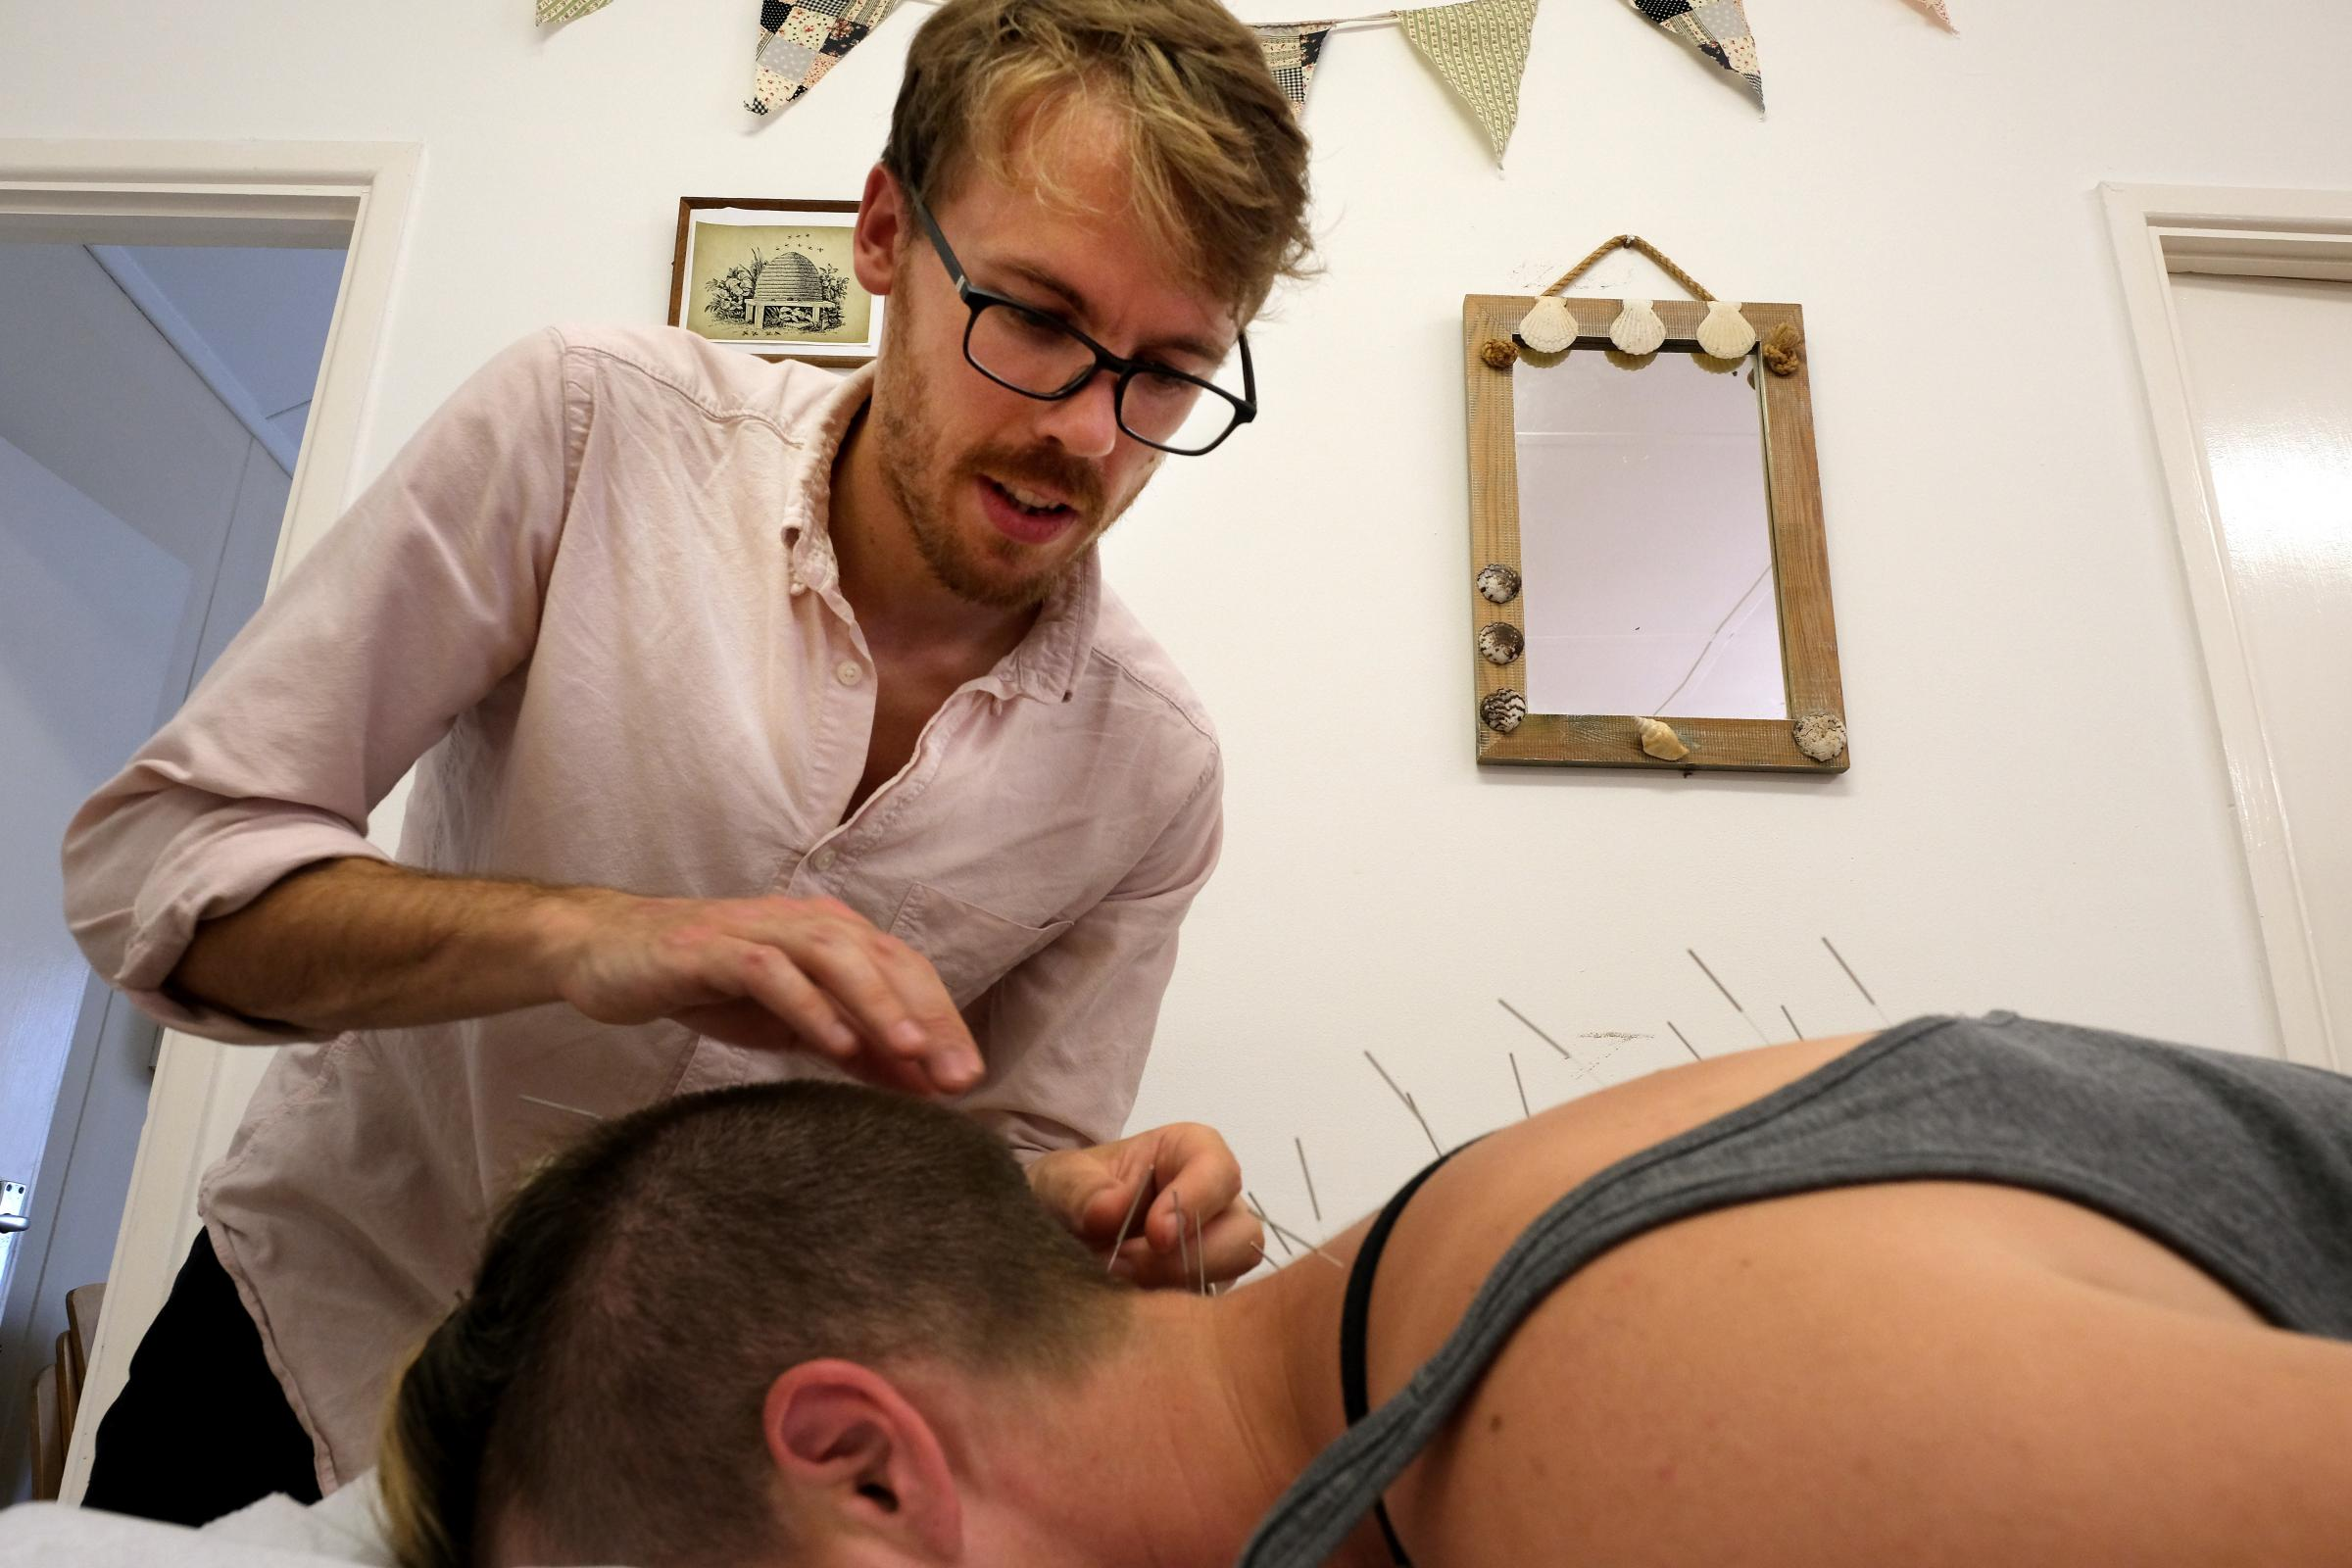 Oxford acupuncture business goes 'carbon positive'